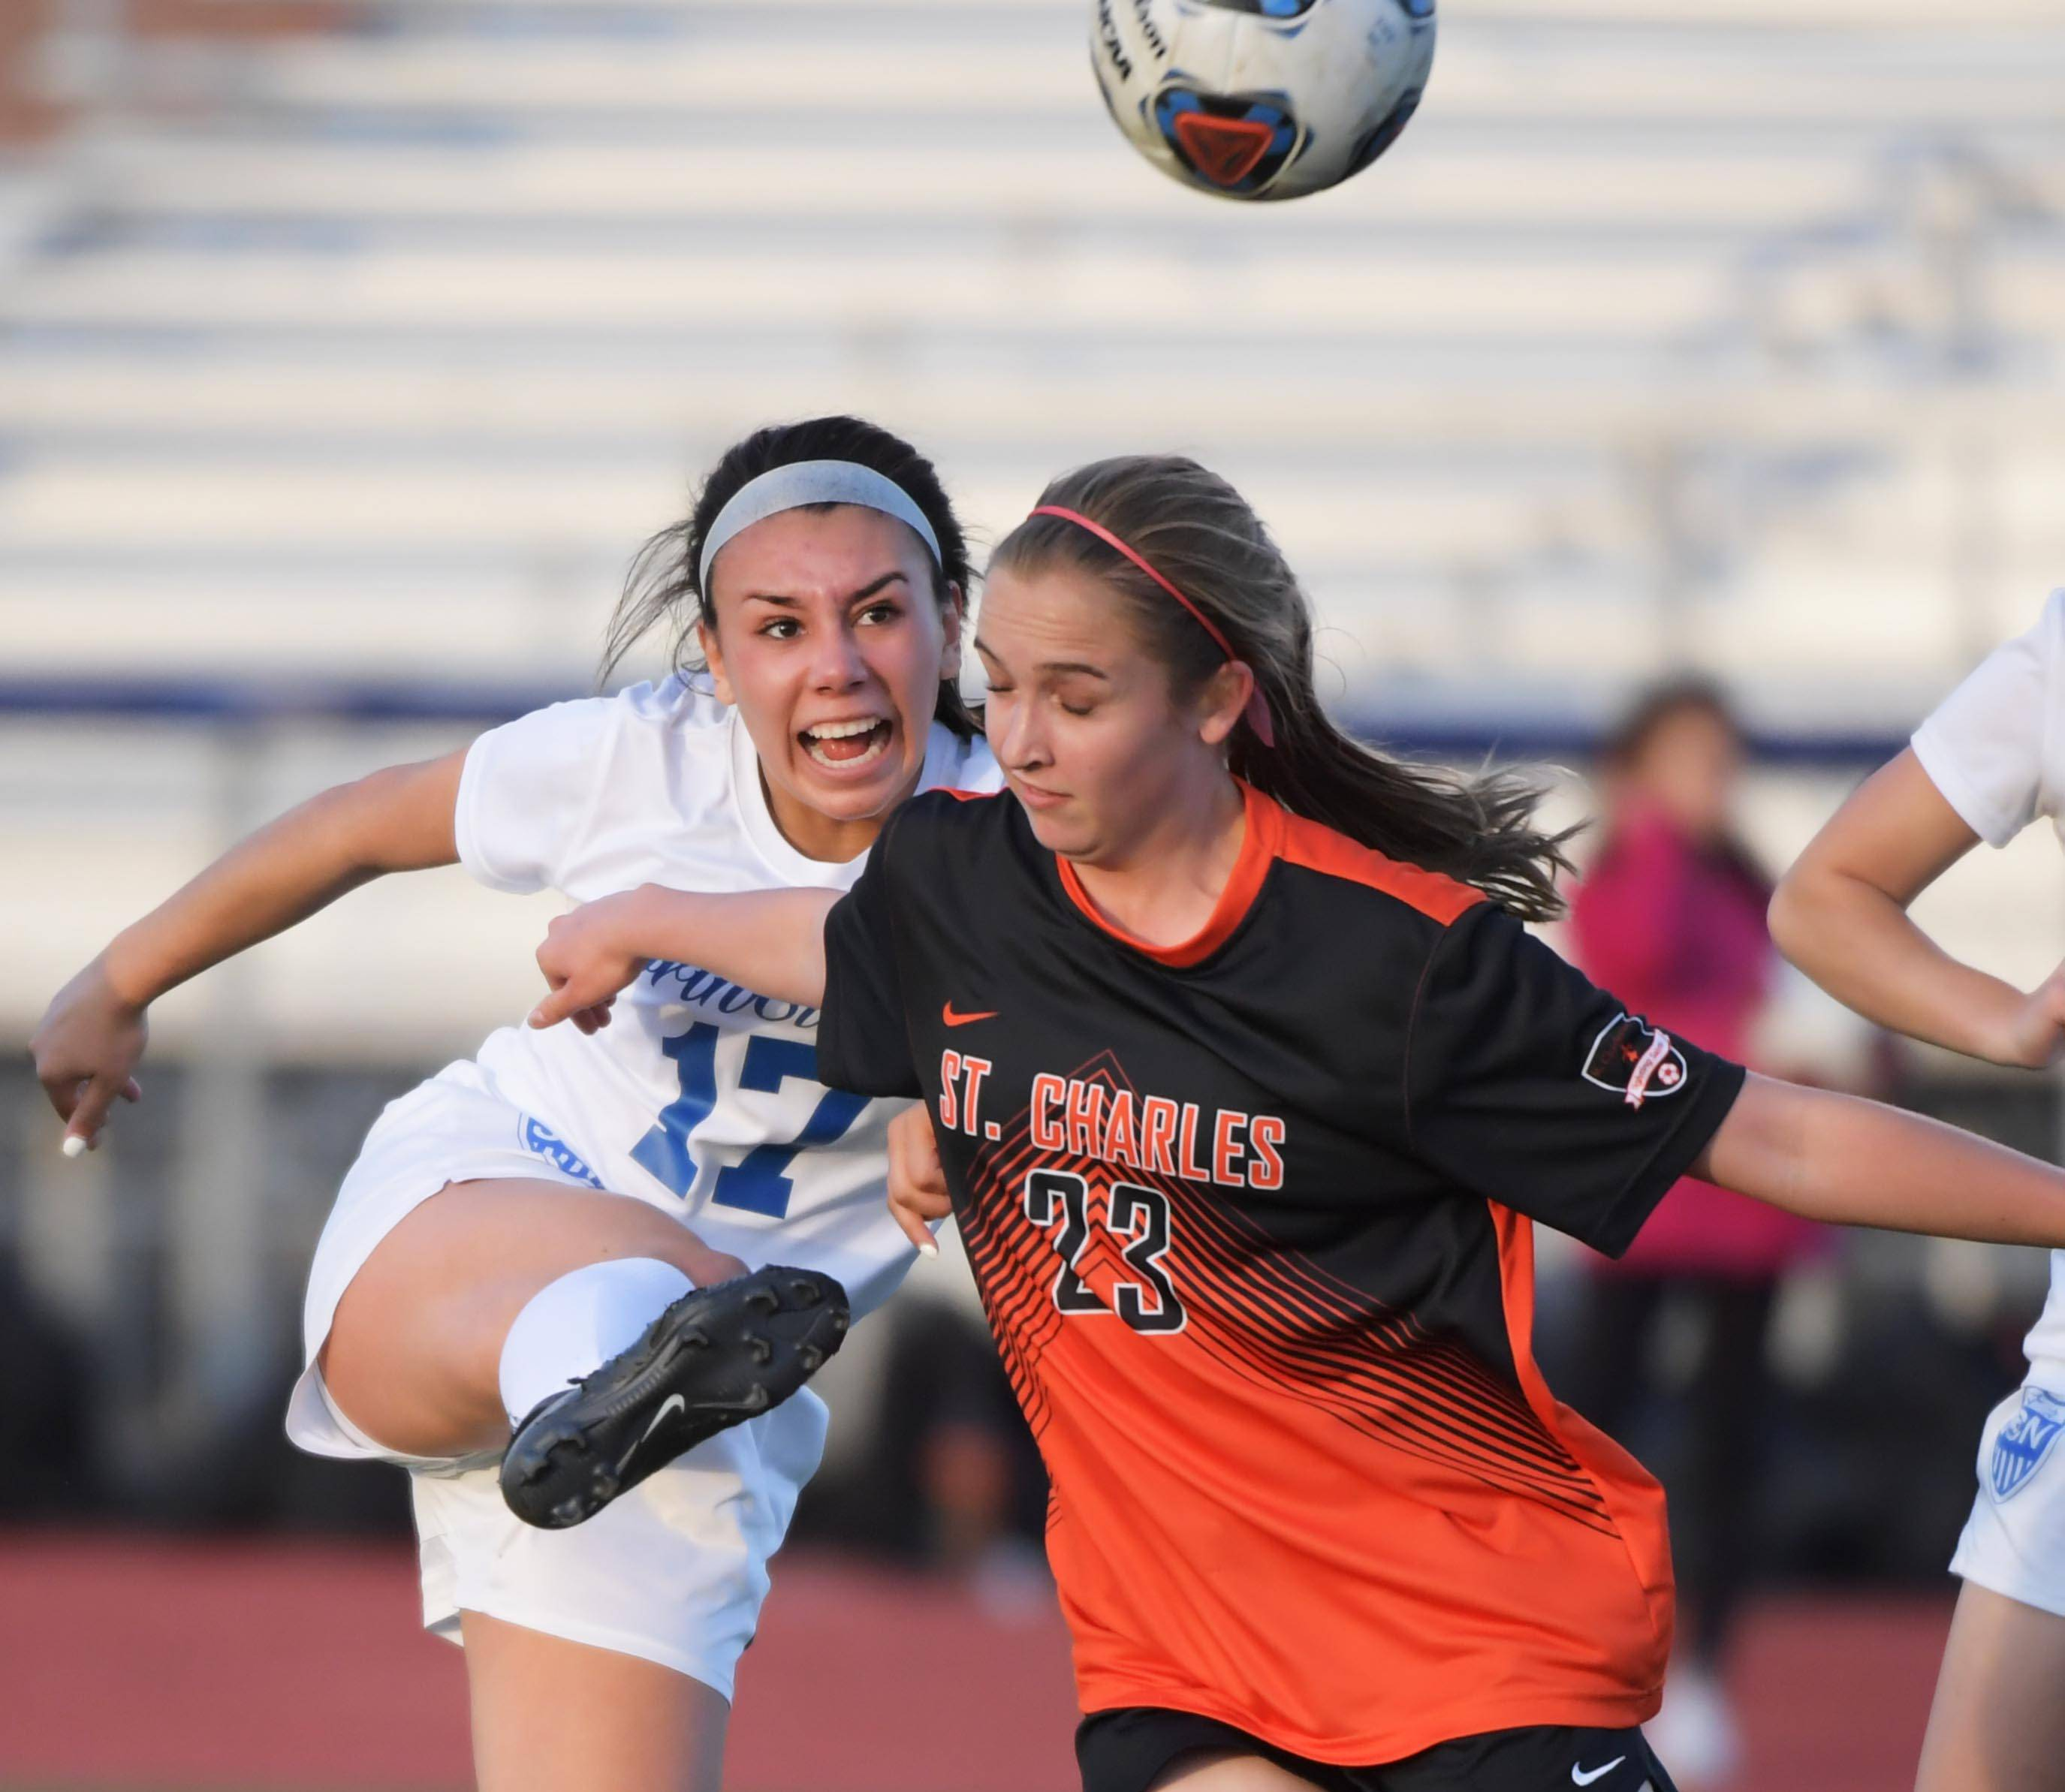 St. Charles North's Claudia Najera unleashes a high kick against St. Charles East's Lindsey Rzeszutko in a girls soccer game at North High School Tuesday.